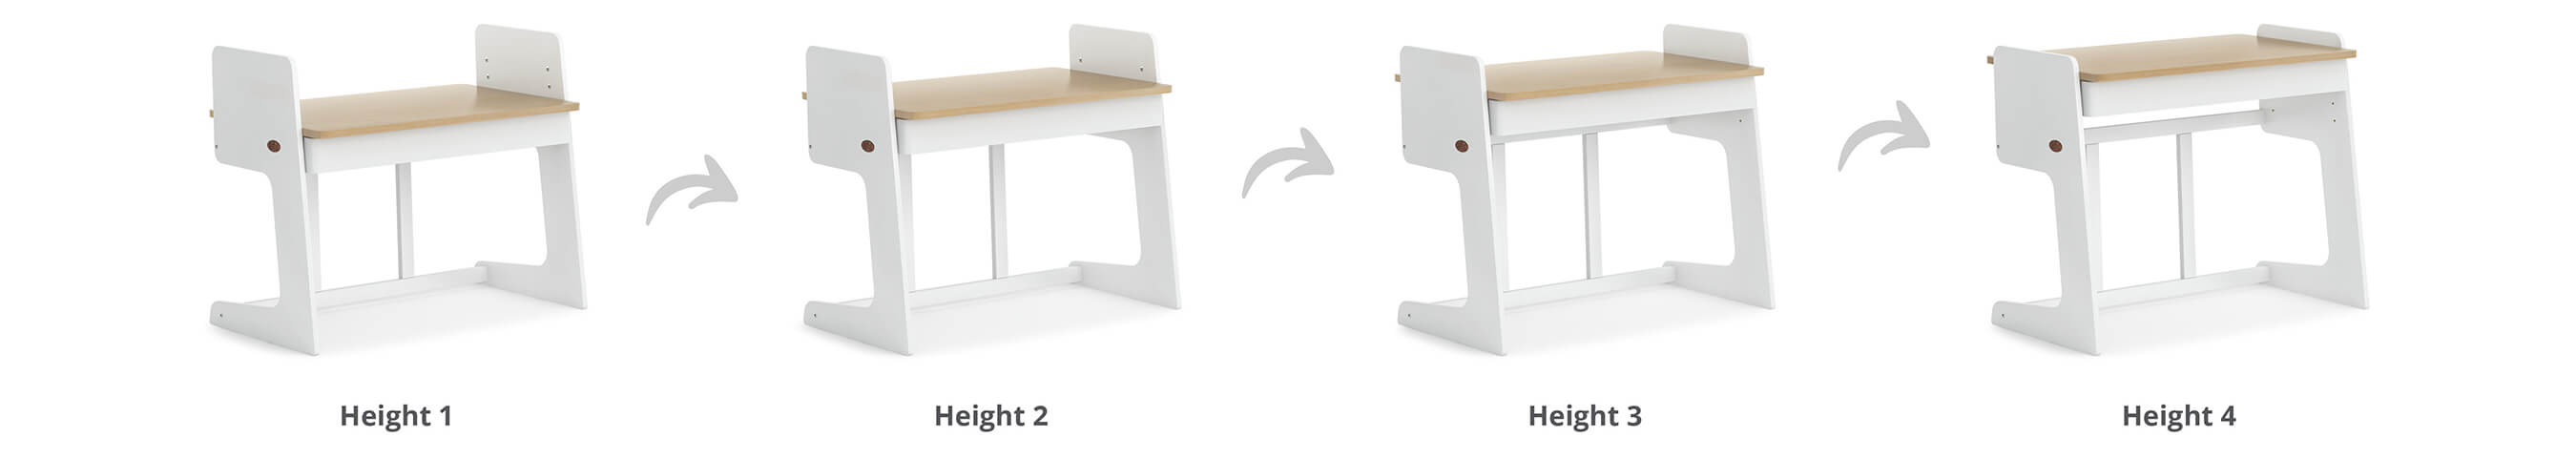 Feature_Highlight_CMS_Blocks_Height_Adjustable_Desks_and_Chairs_January_2021-021